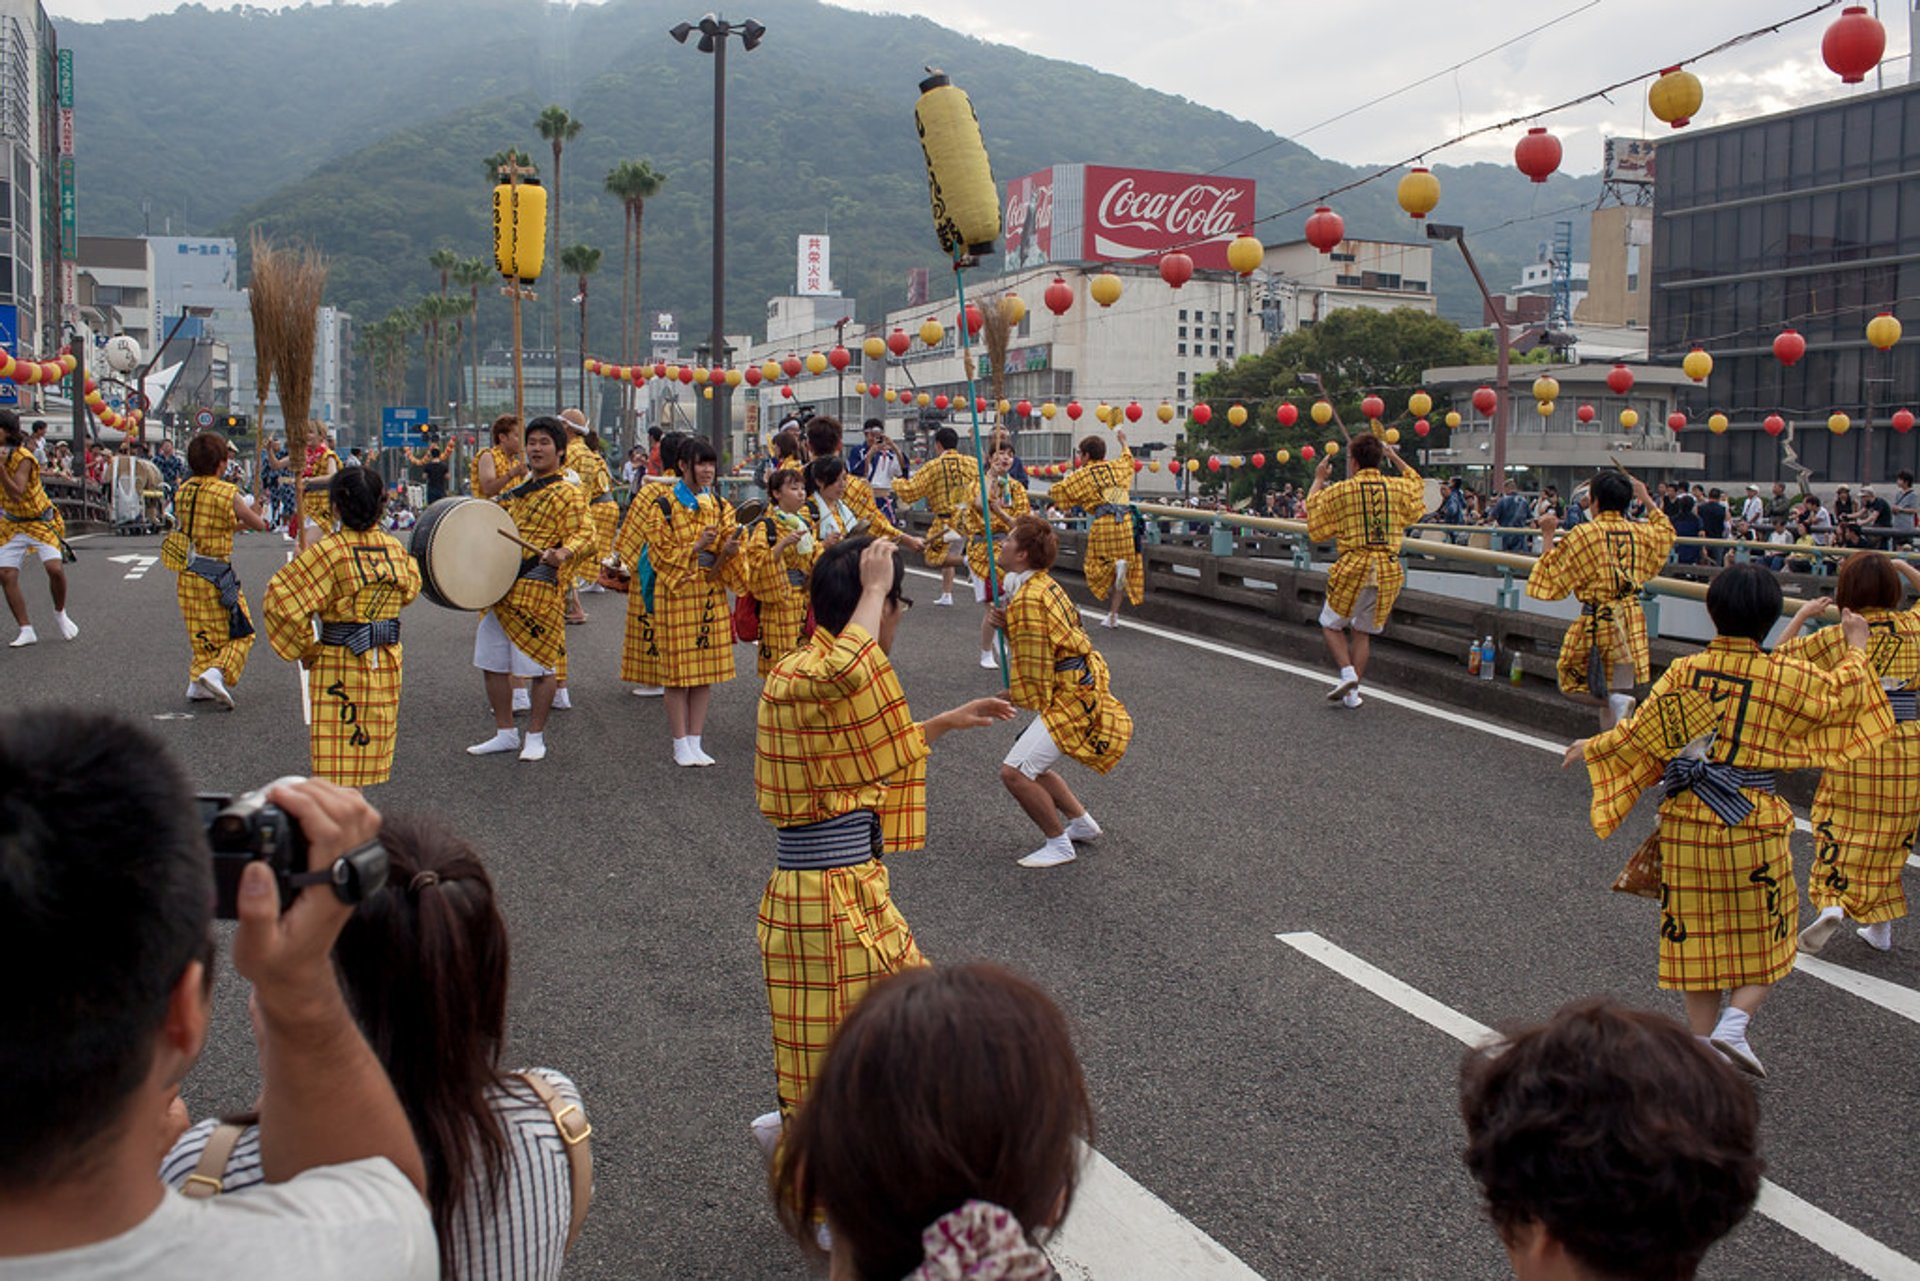 Dancing on the bridge in Tokushima, Awaodori festival performance 2020